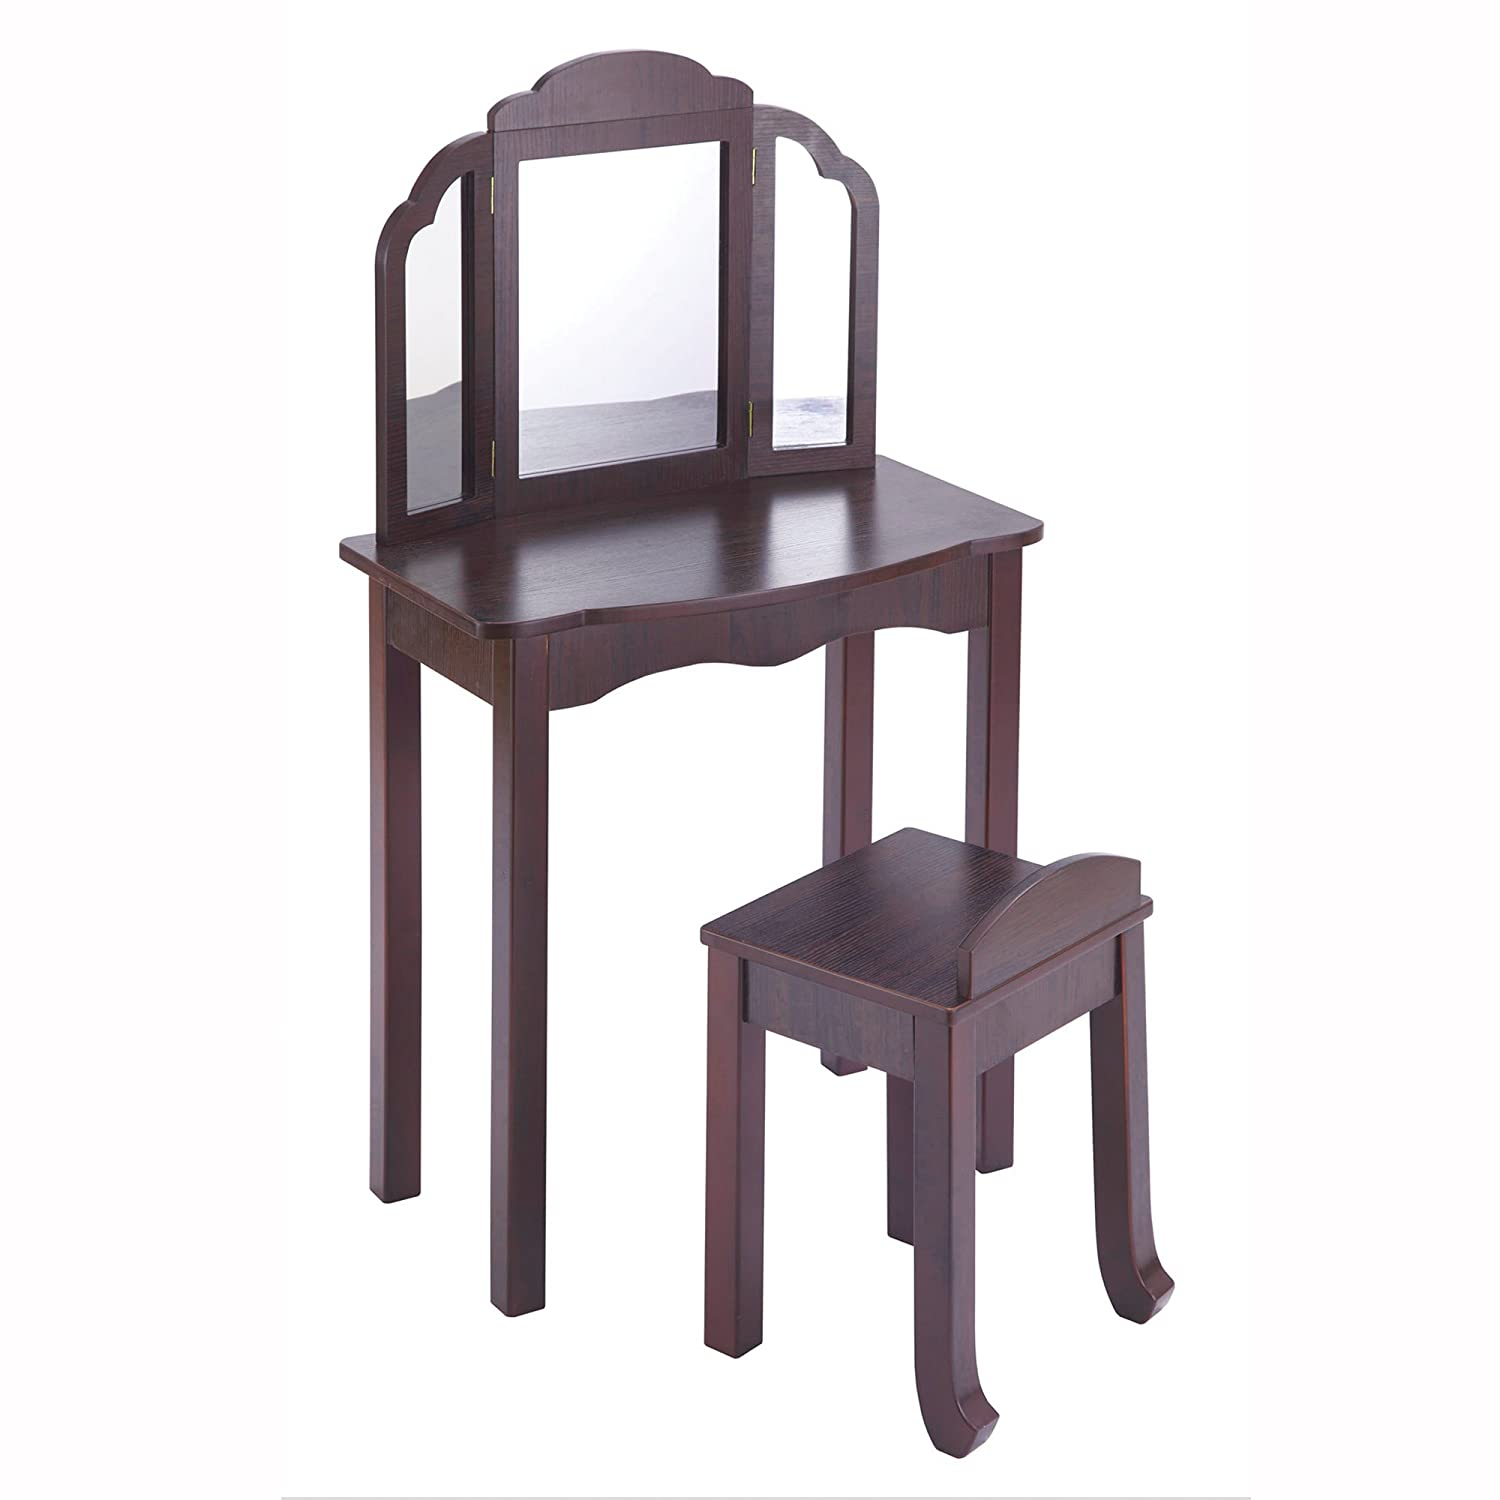 Guidecraft Espresso - Dark Cherry Expressions Wooden Vanity Table and Stool Set with 3 Mirrors: Kids Room Furniture G87304